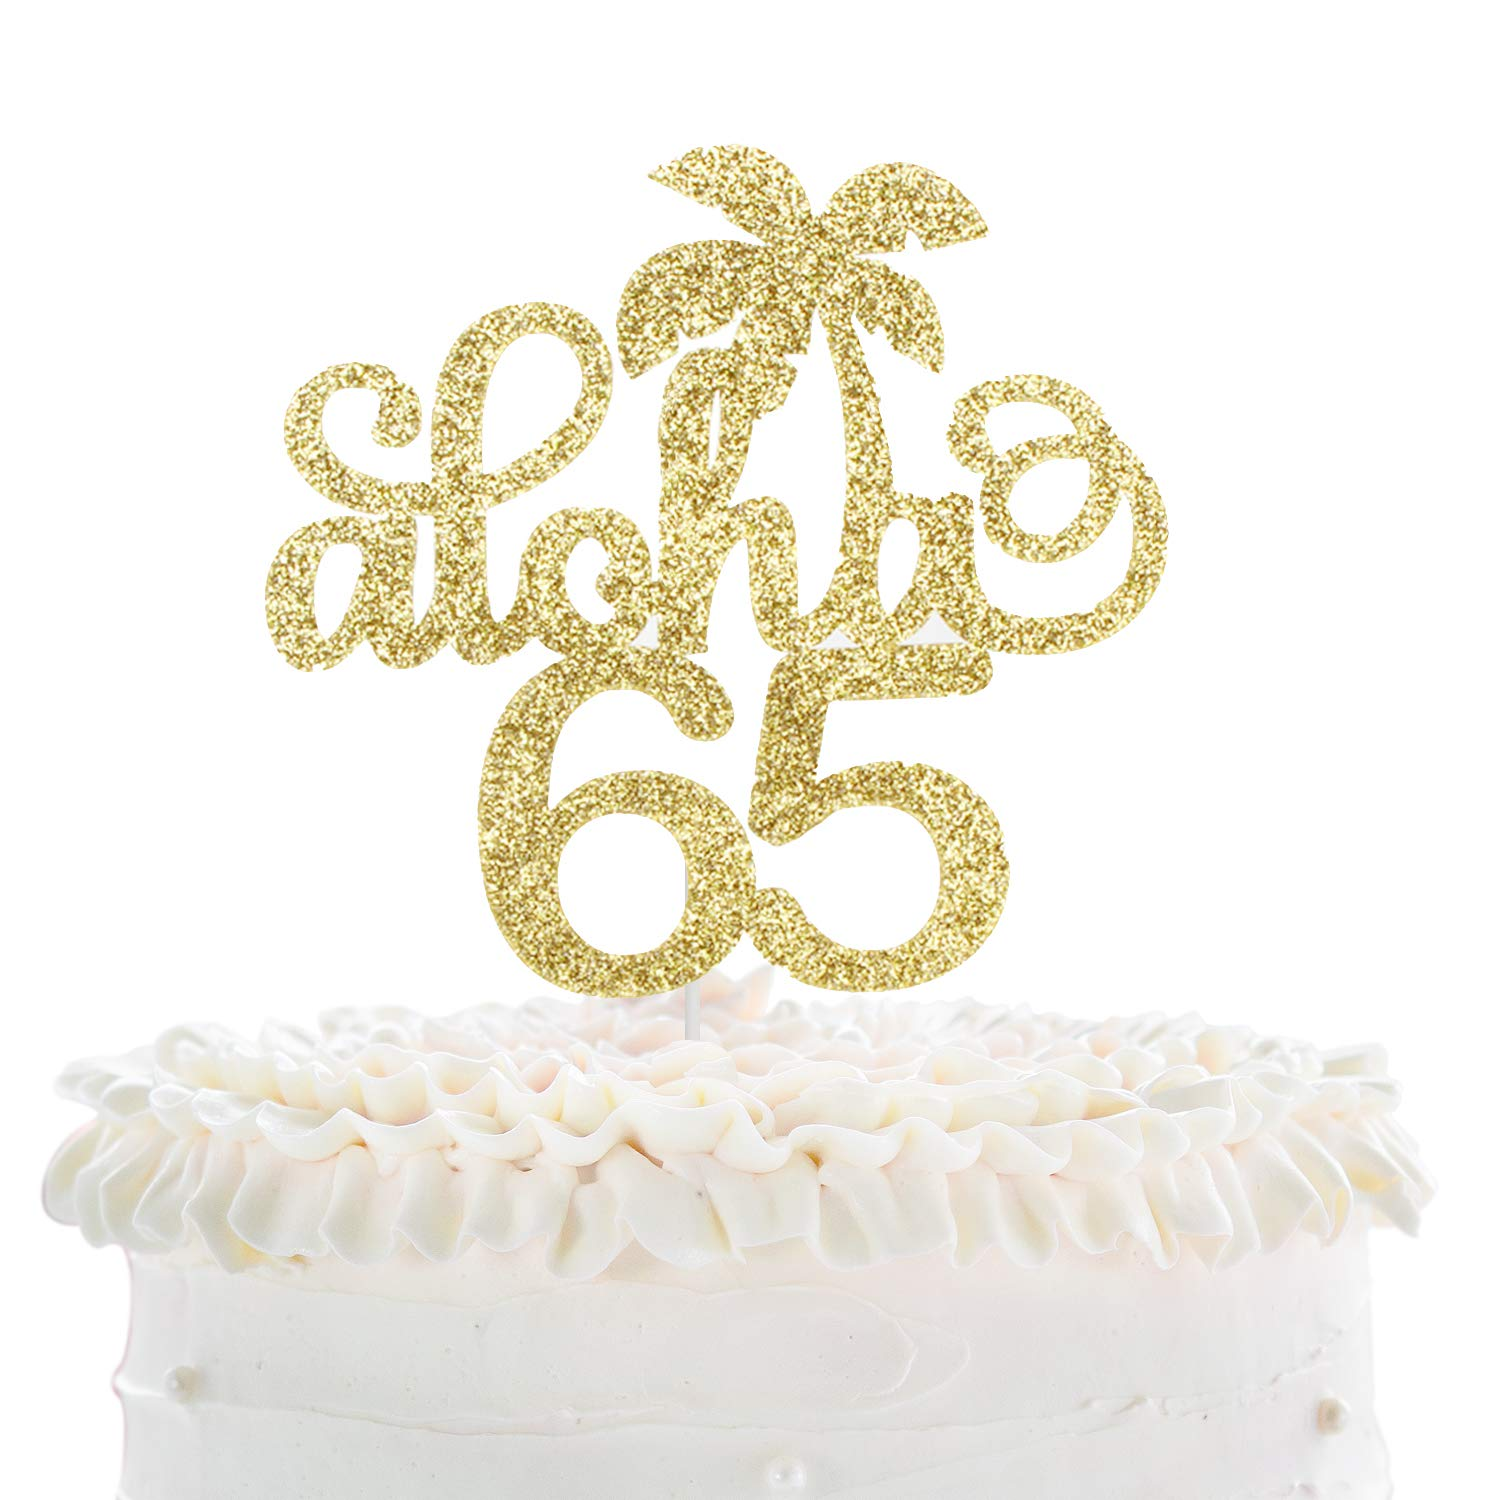 Incredible Aloha 65Th Birthday Cake Topper Gold Glitter Wedding Anniversary Personalised Birthday Cards Cominlily Jamesorg